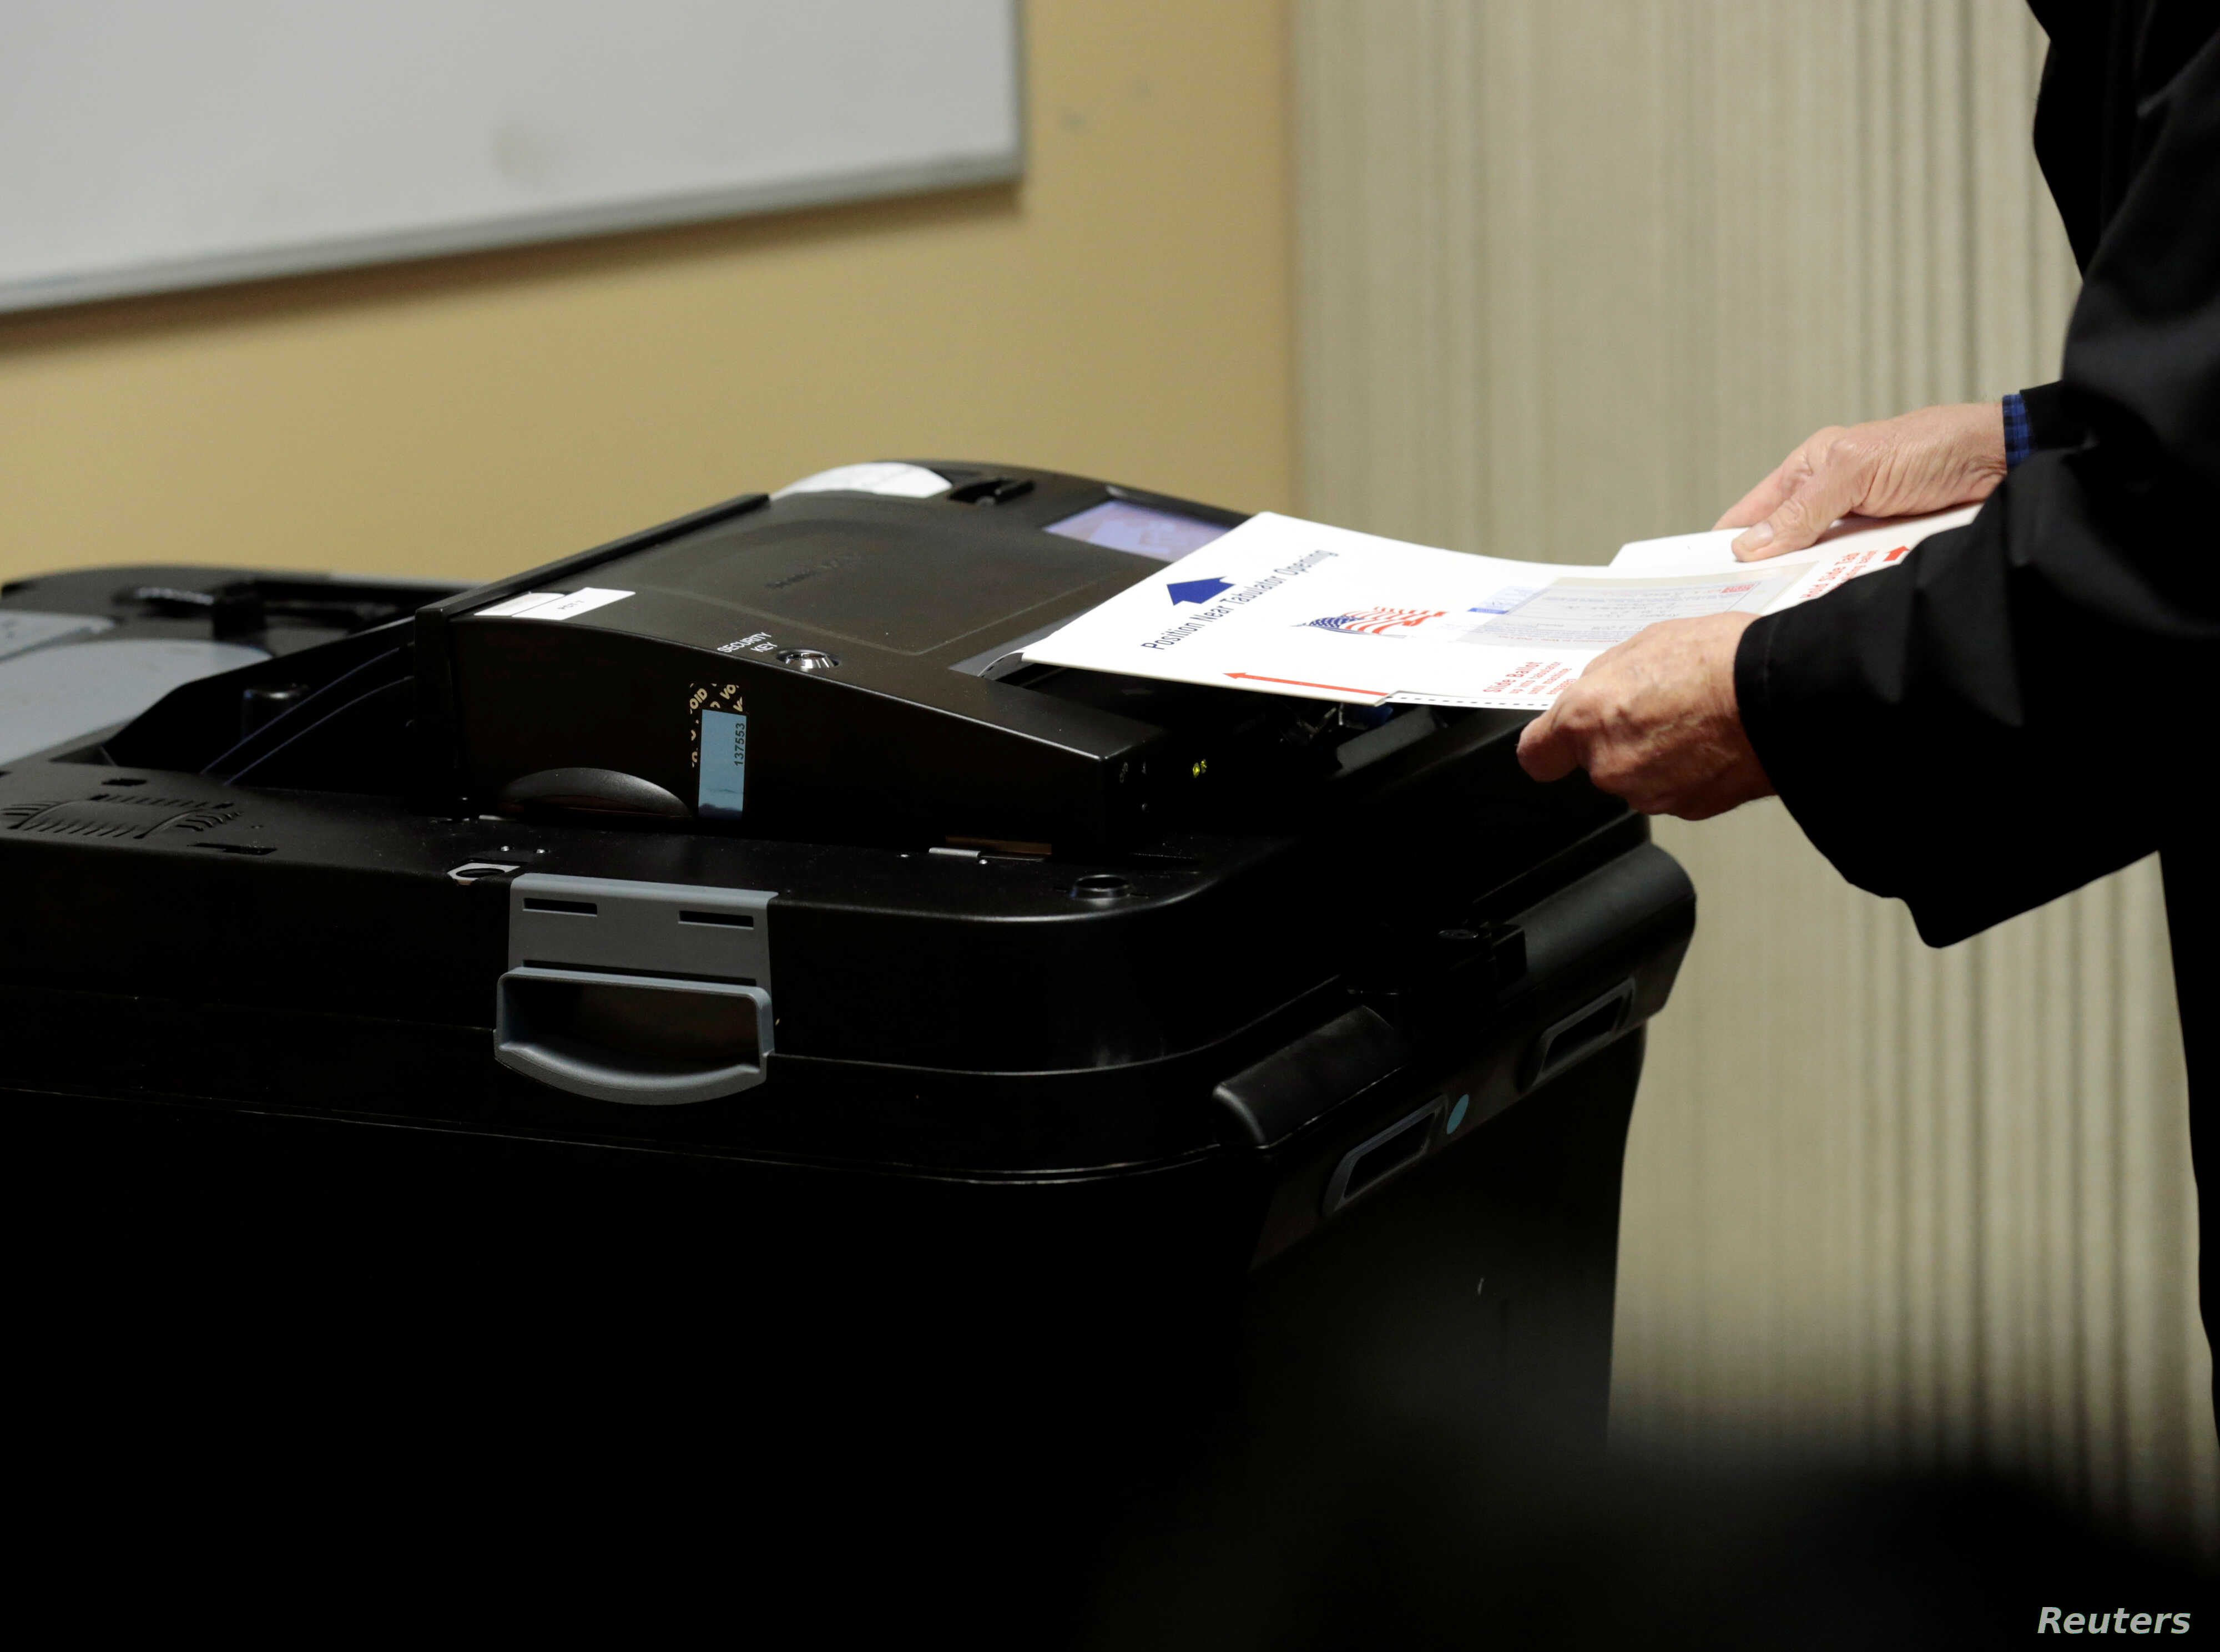 A person places his ballot in a tabulating machine as they vote in midterm election at the St. Paul Lutheran Church in East Lansing, Michigan, Nov. 6, 2018.